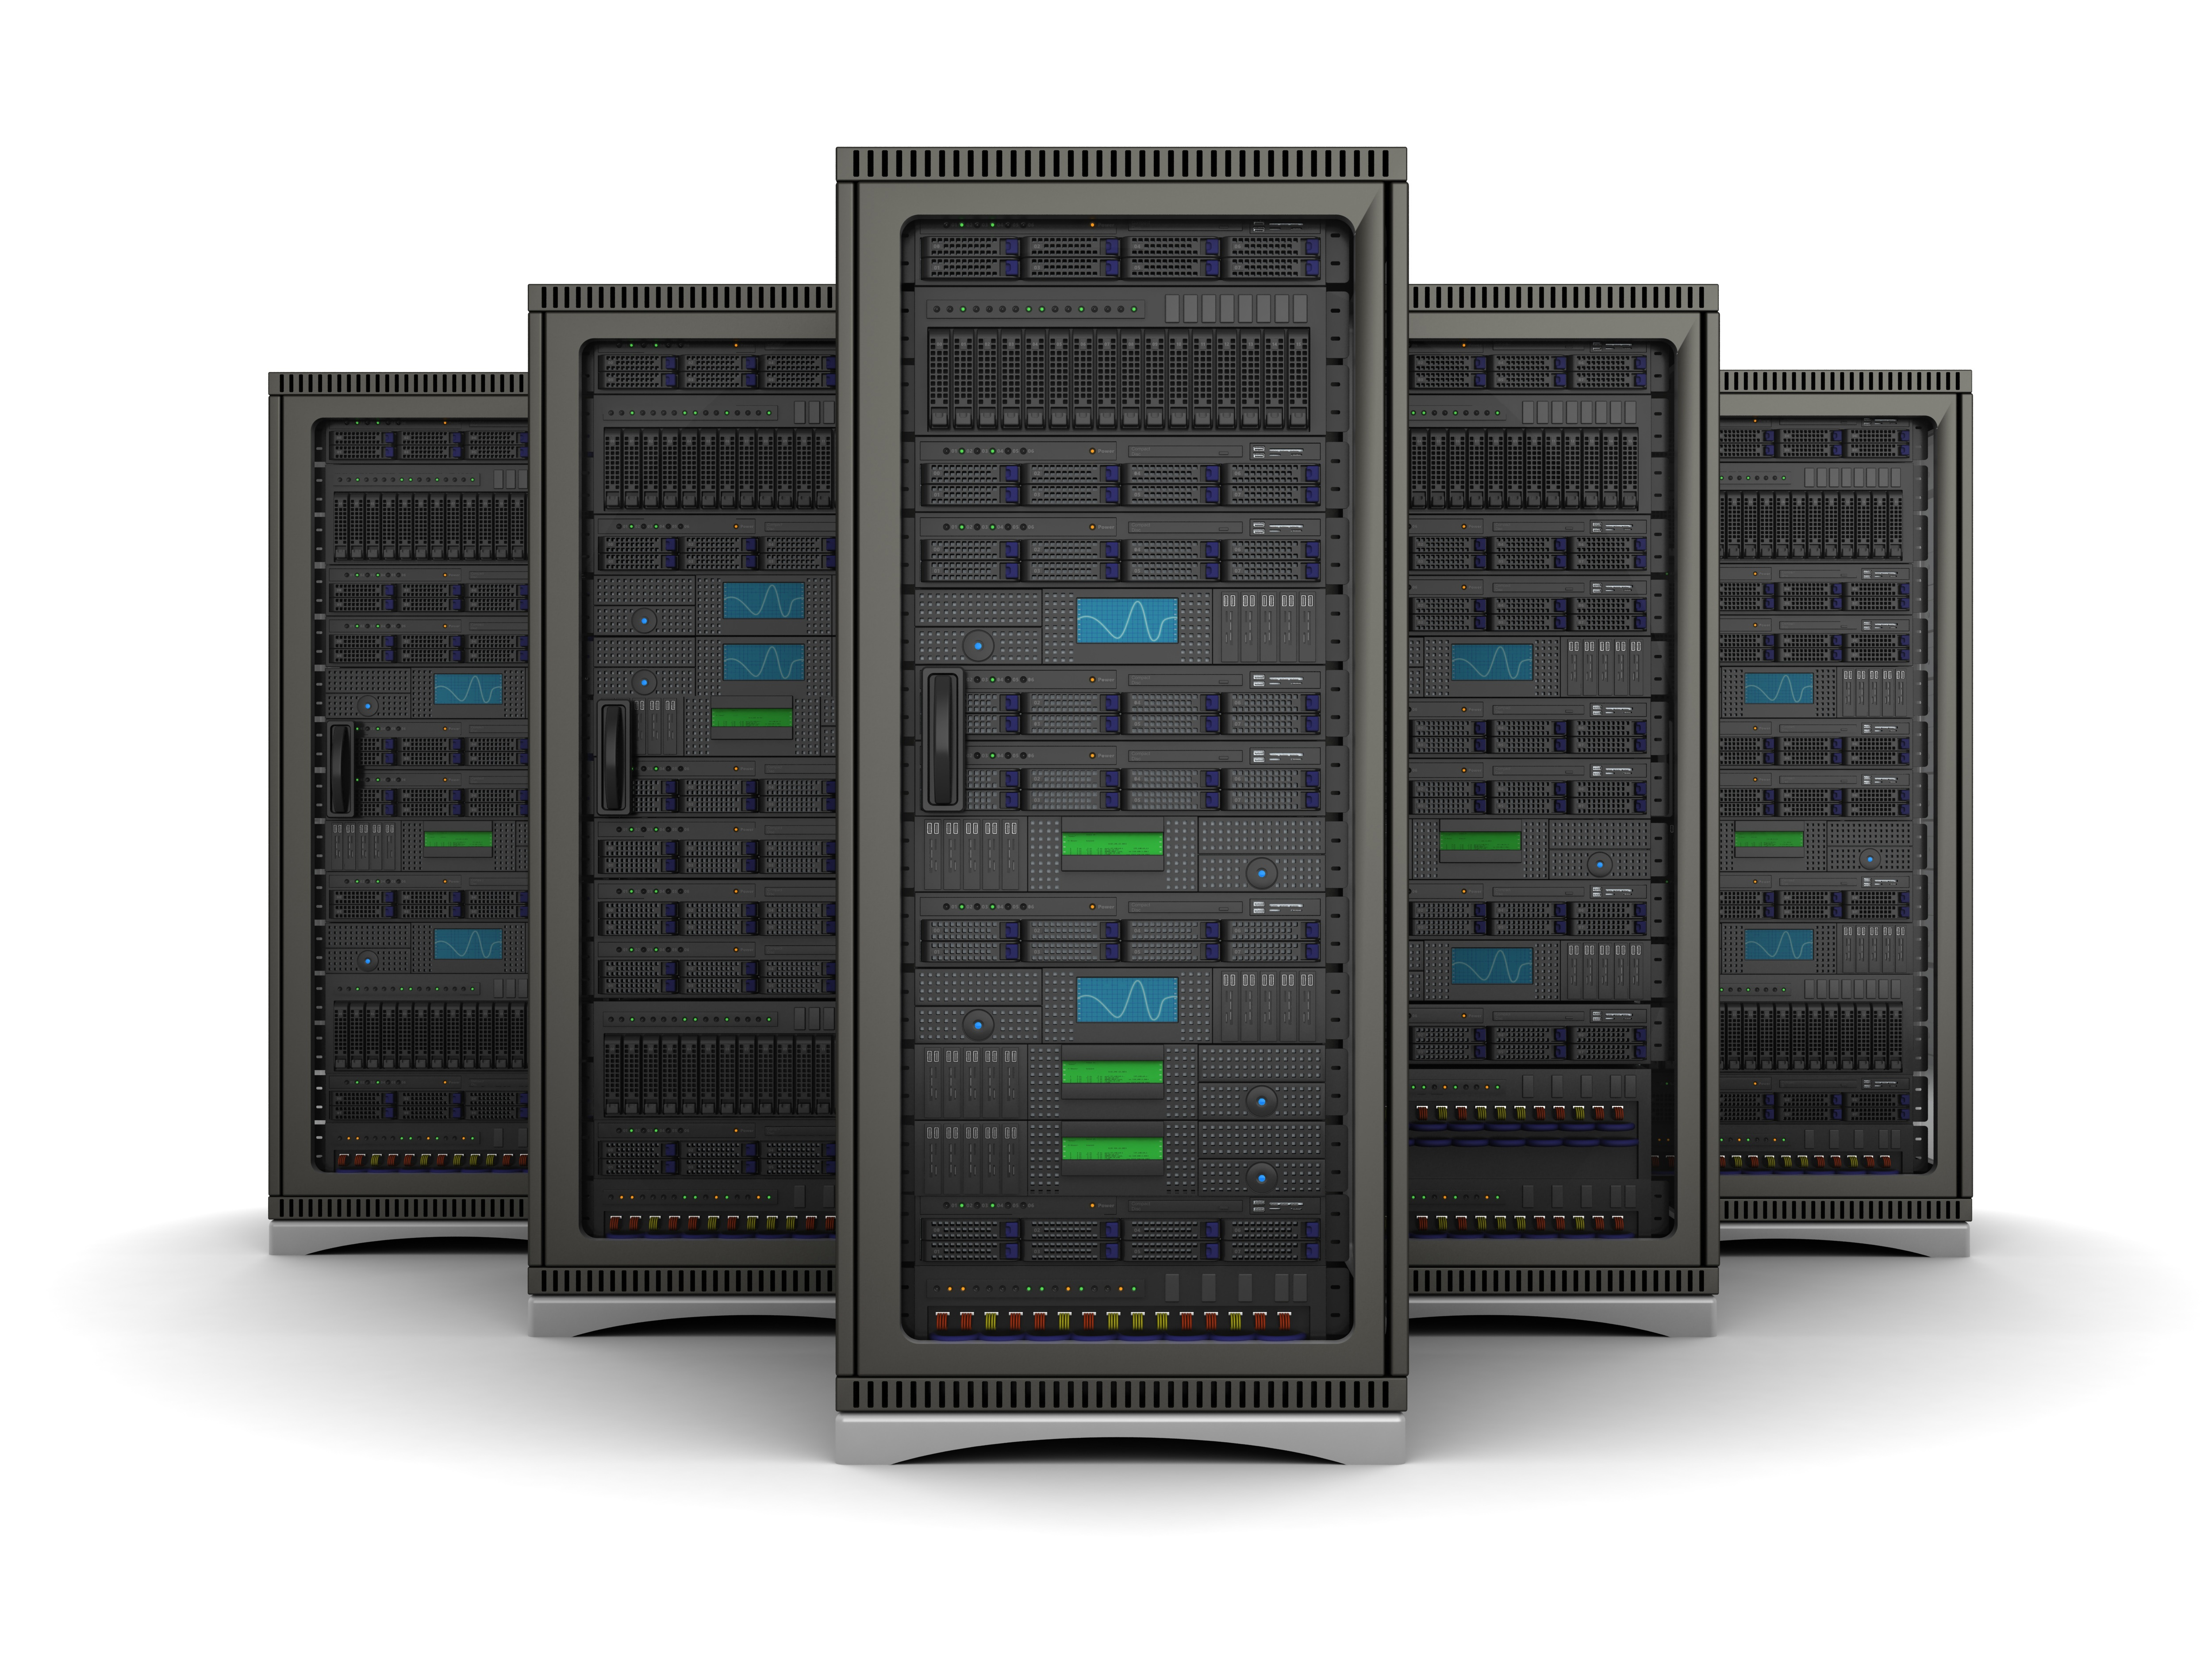 Why Your Organization Should Leave the IT Hardware Business